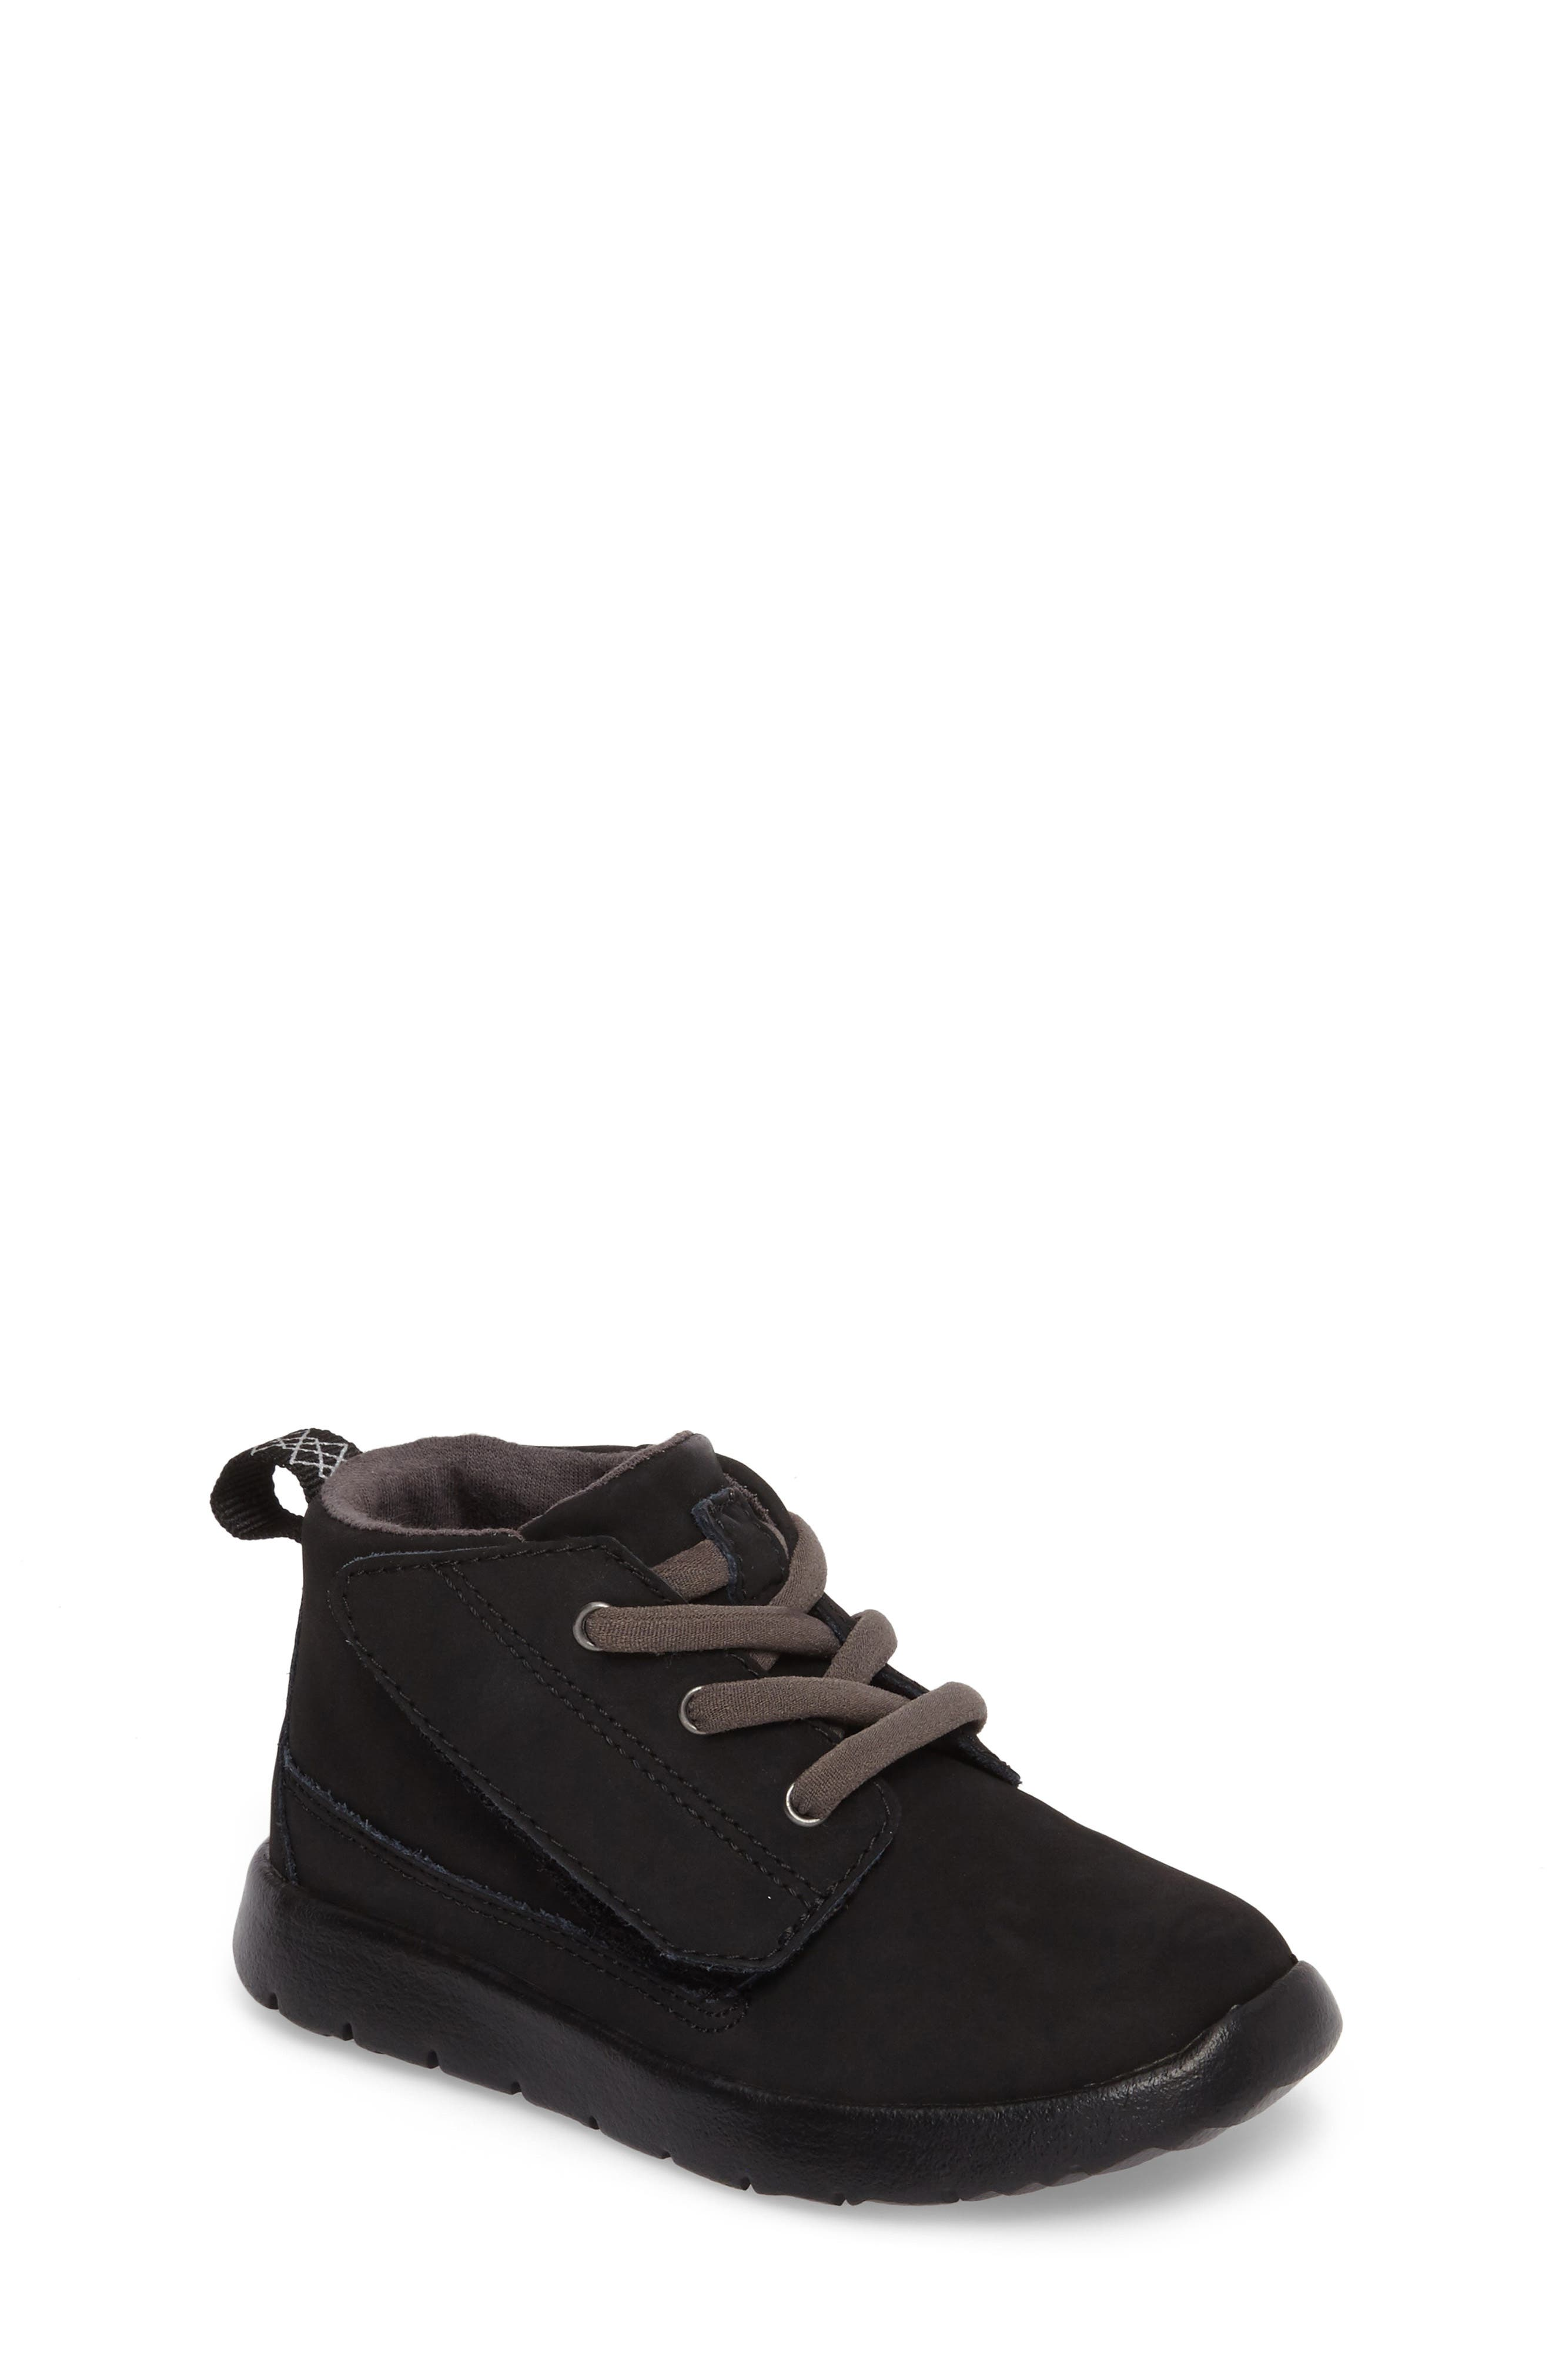 Canoe Water-Resistant Bootie,                             Main thumbnail 1, color,                             001